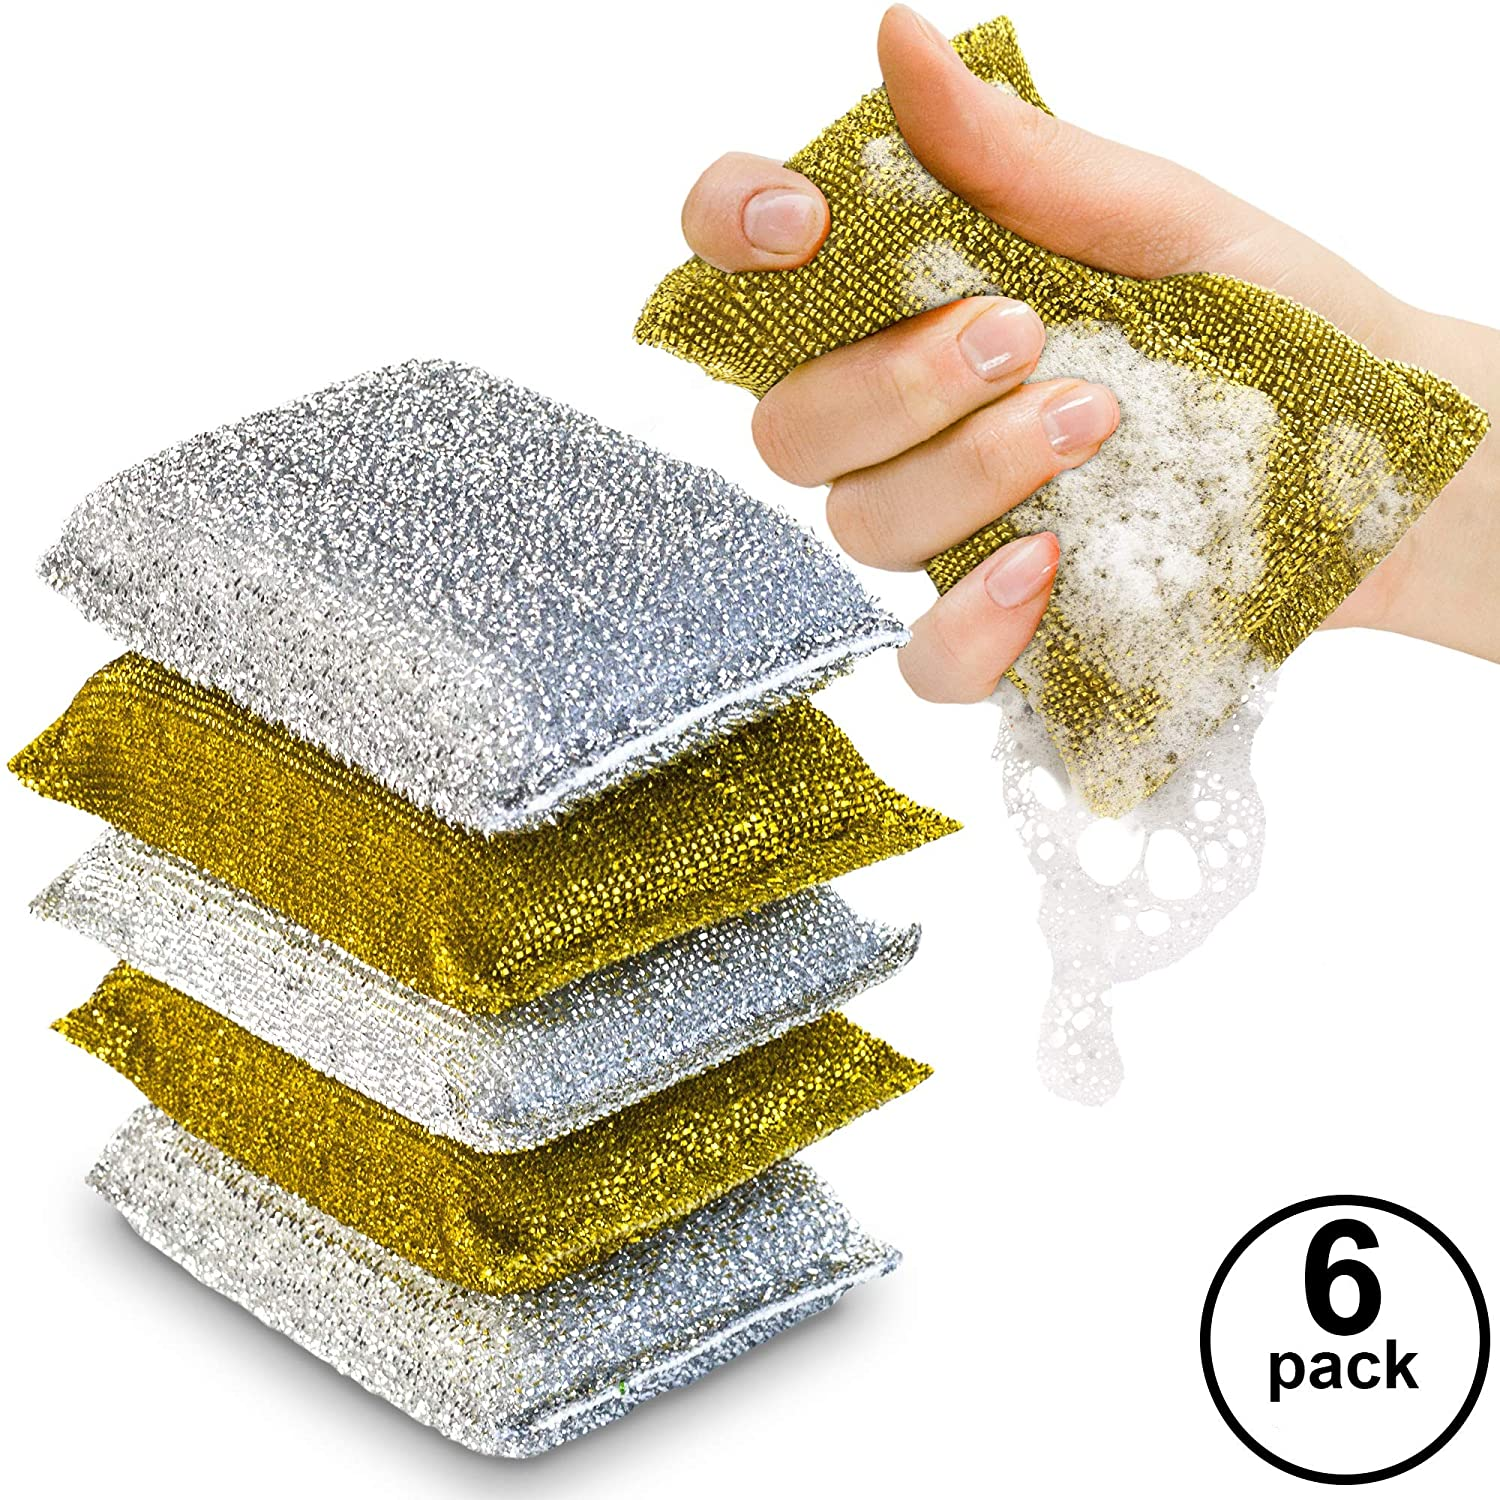 Kitchen Scrubbing Sponges - Heavy Duty Non-Scratch Scrubbing Cleaner Sponges In 2 Colors - Multi-Surface Non-Metal Dish Scouring Scrubbers For Fast Cleaning - With Antibacterial Technology By (6)